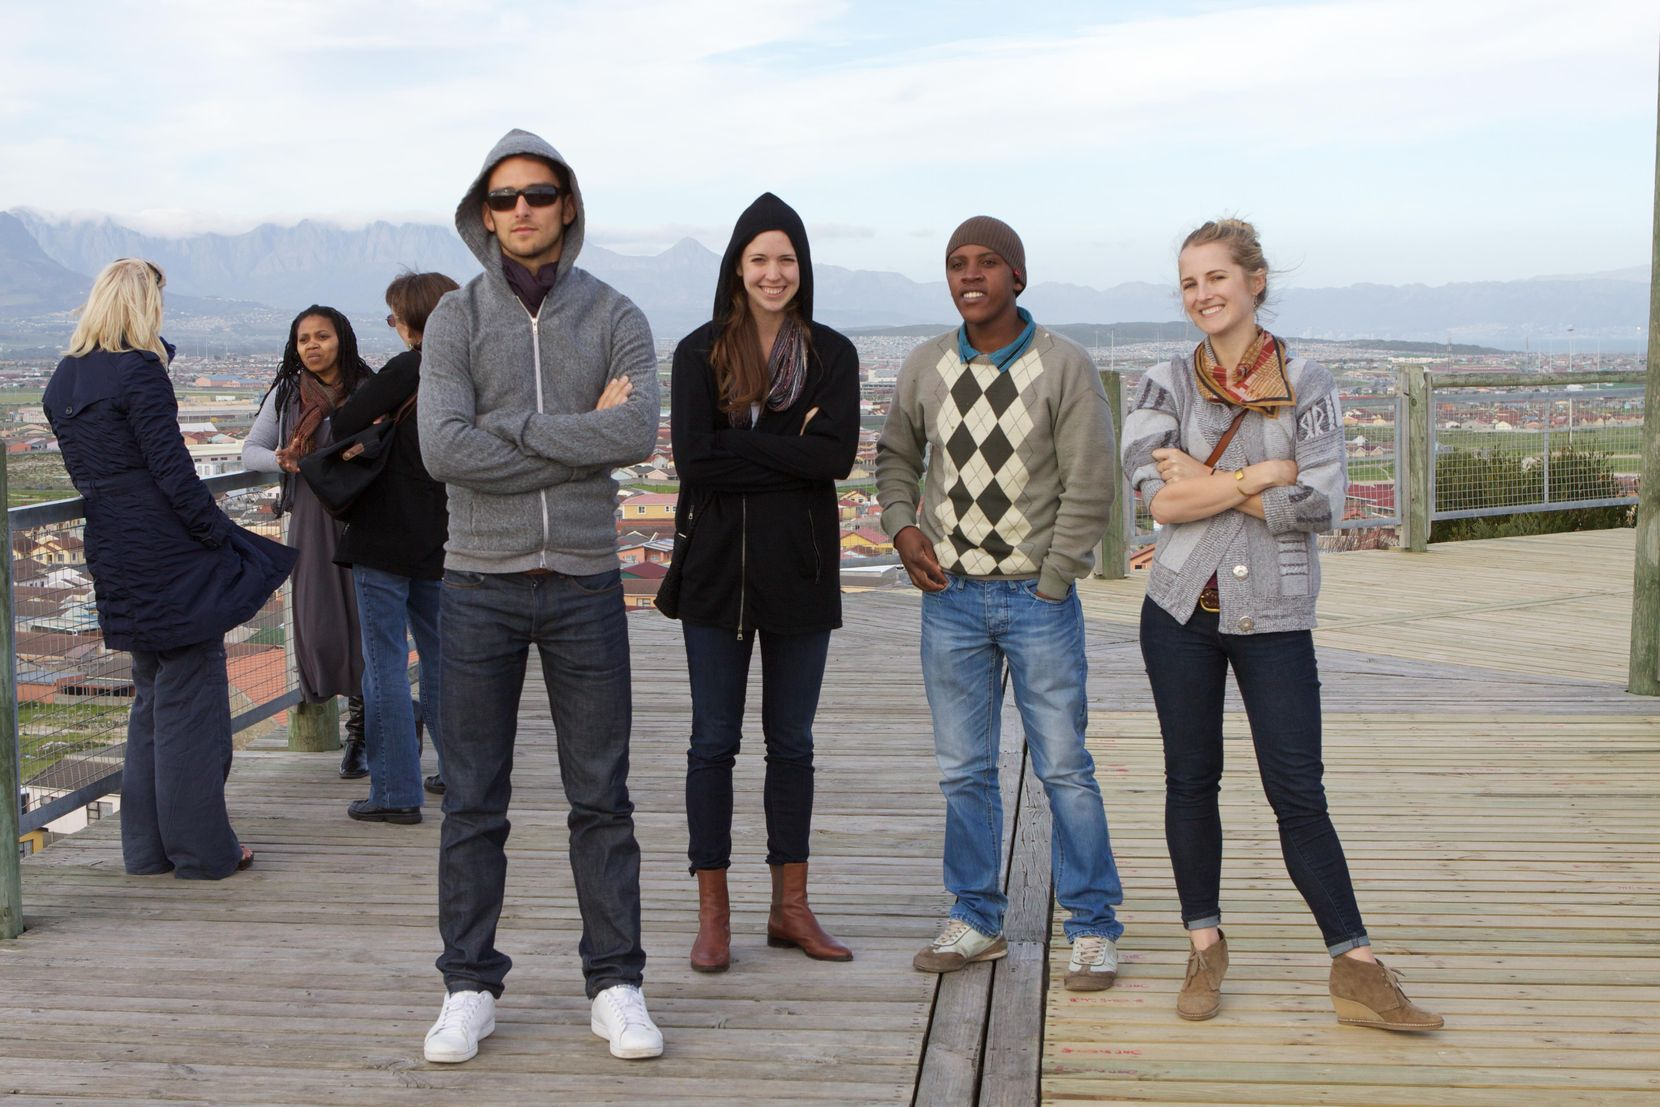 A group of two men and two women stand on a wooden deck overlooking a town and smile towards the camera. They wear jeans and assorted jackets, sweaters or sweatshirts.